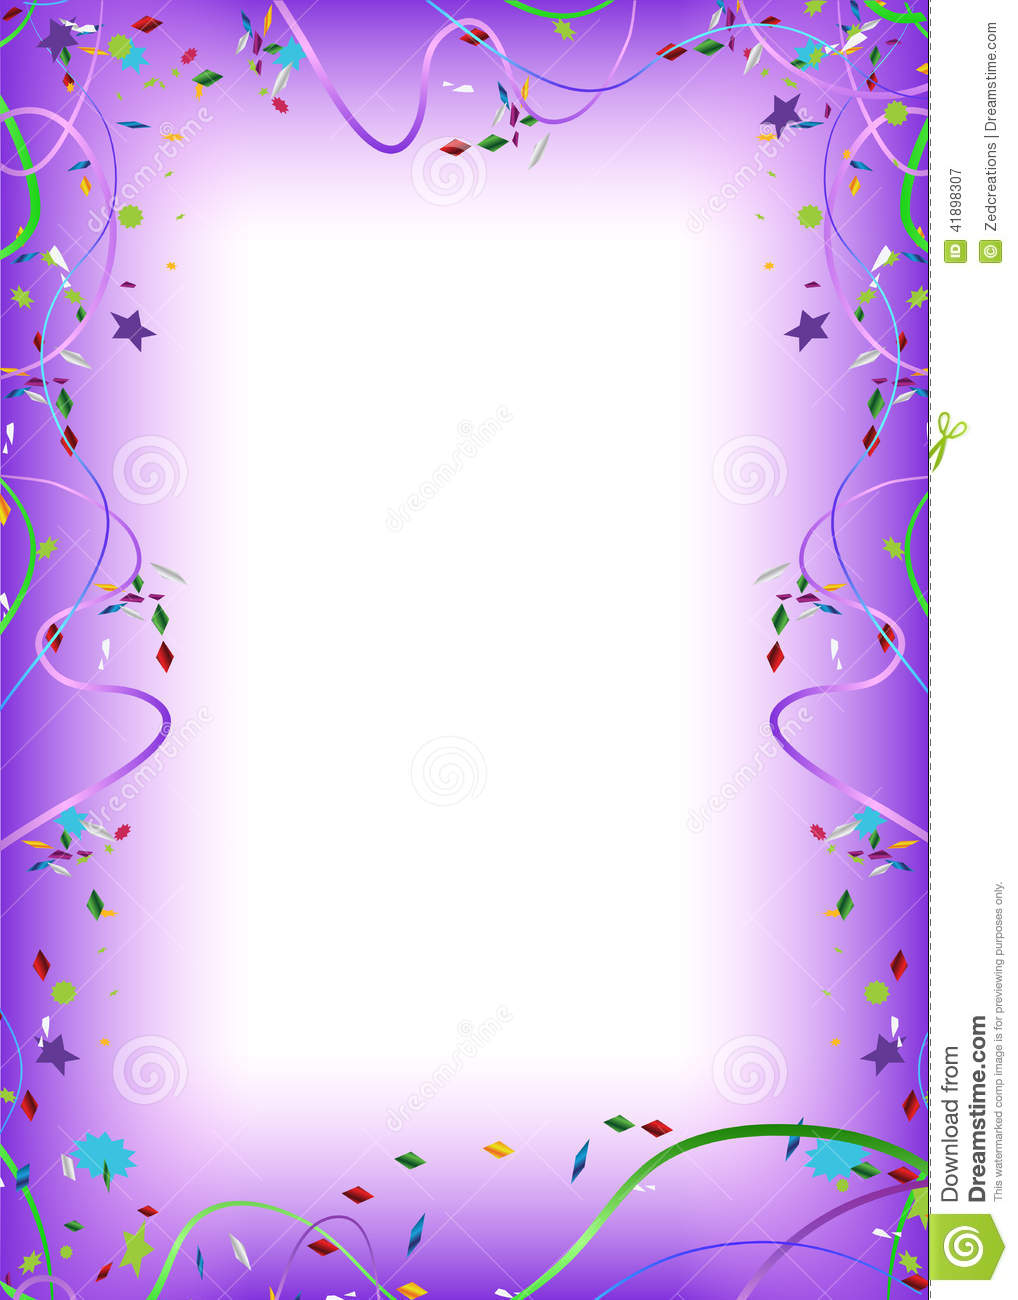 Party related border/frame illustration design.